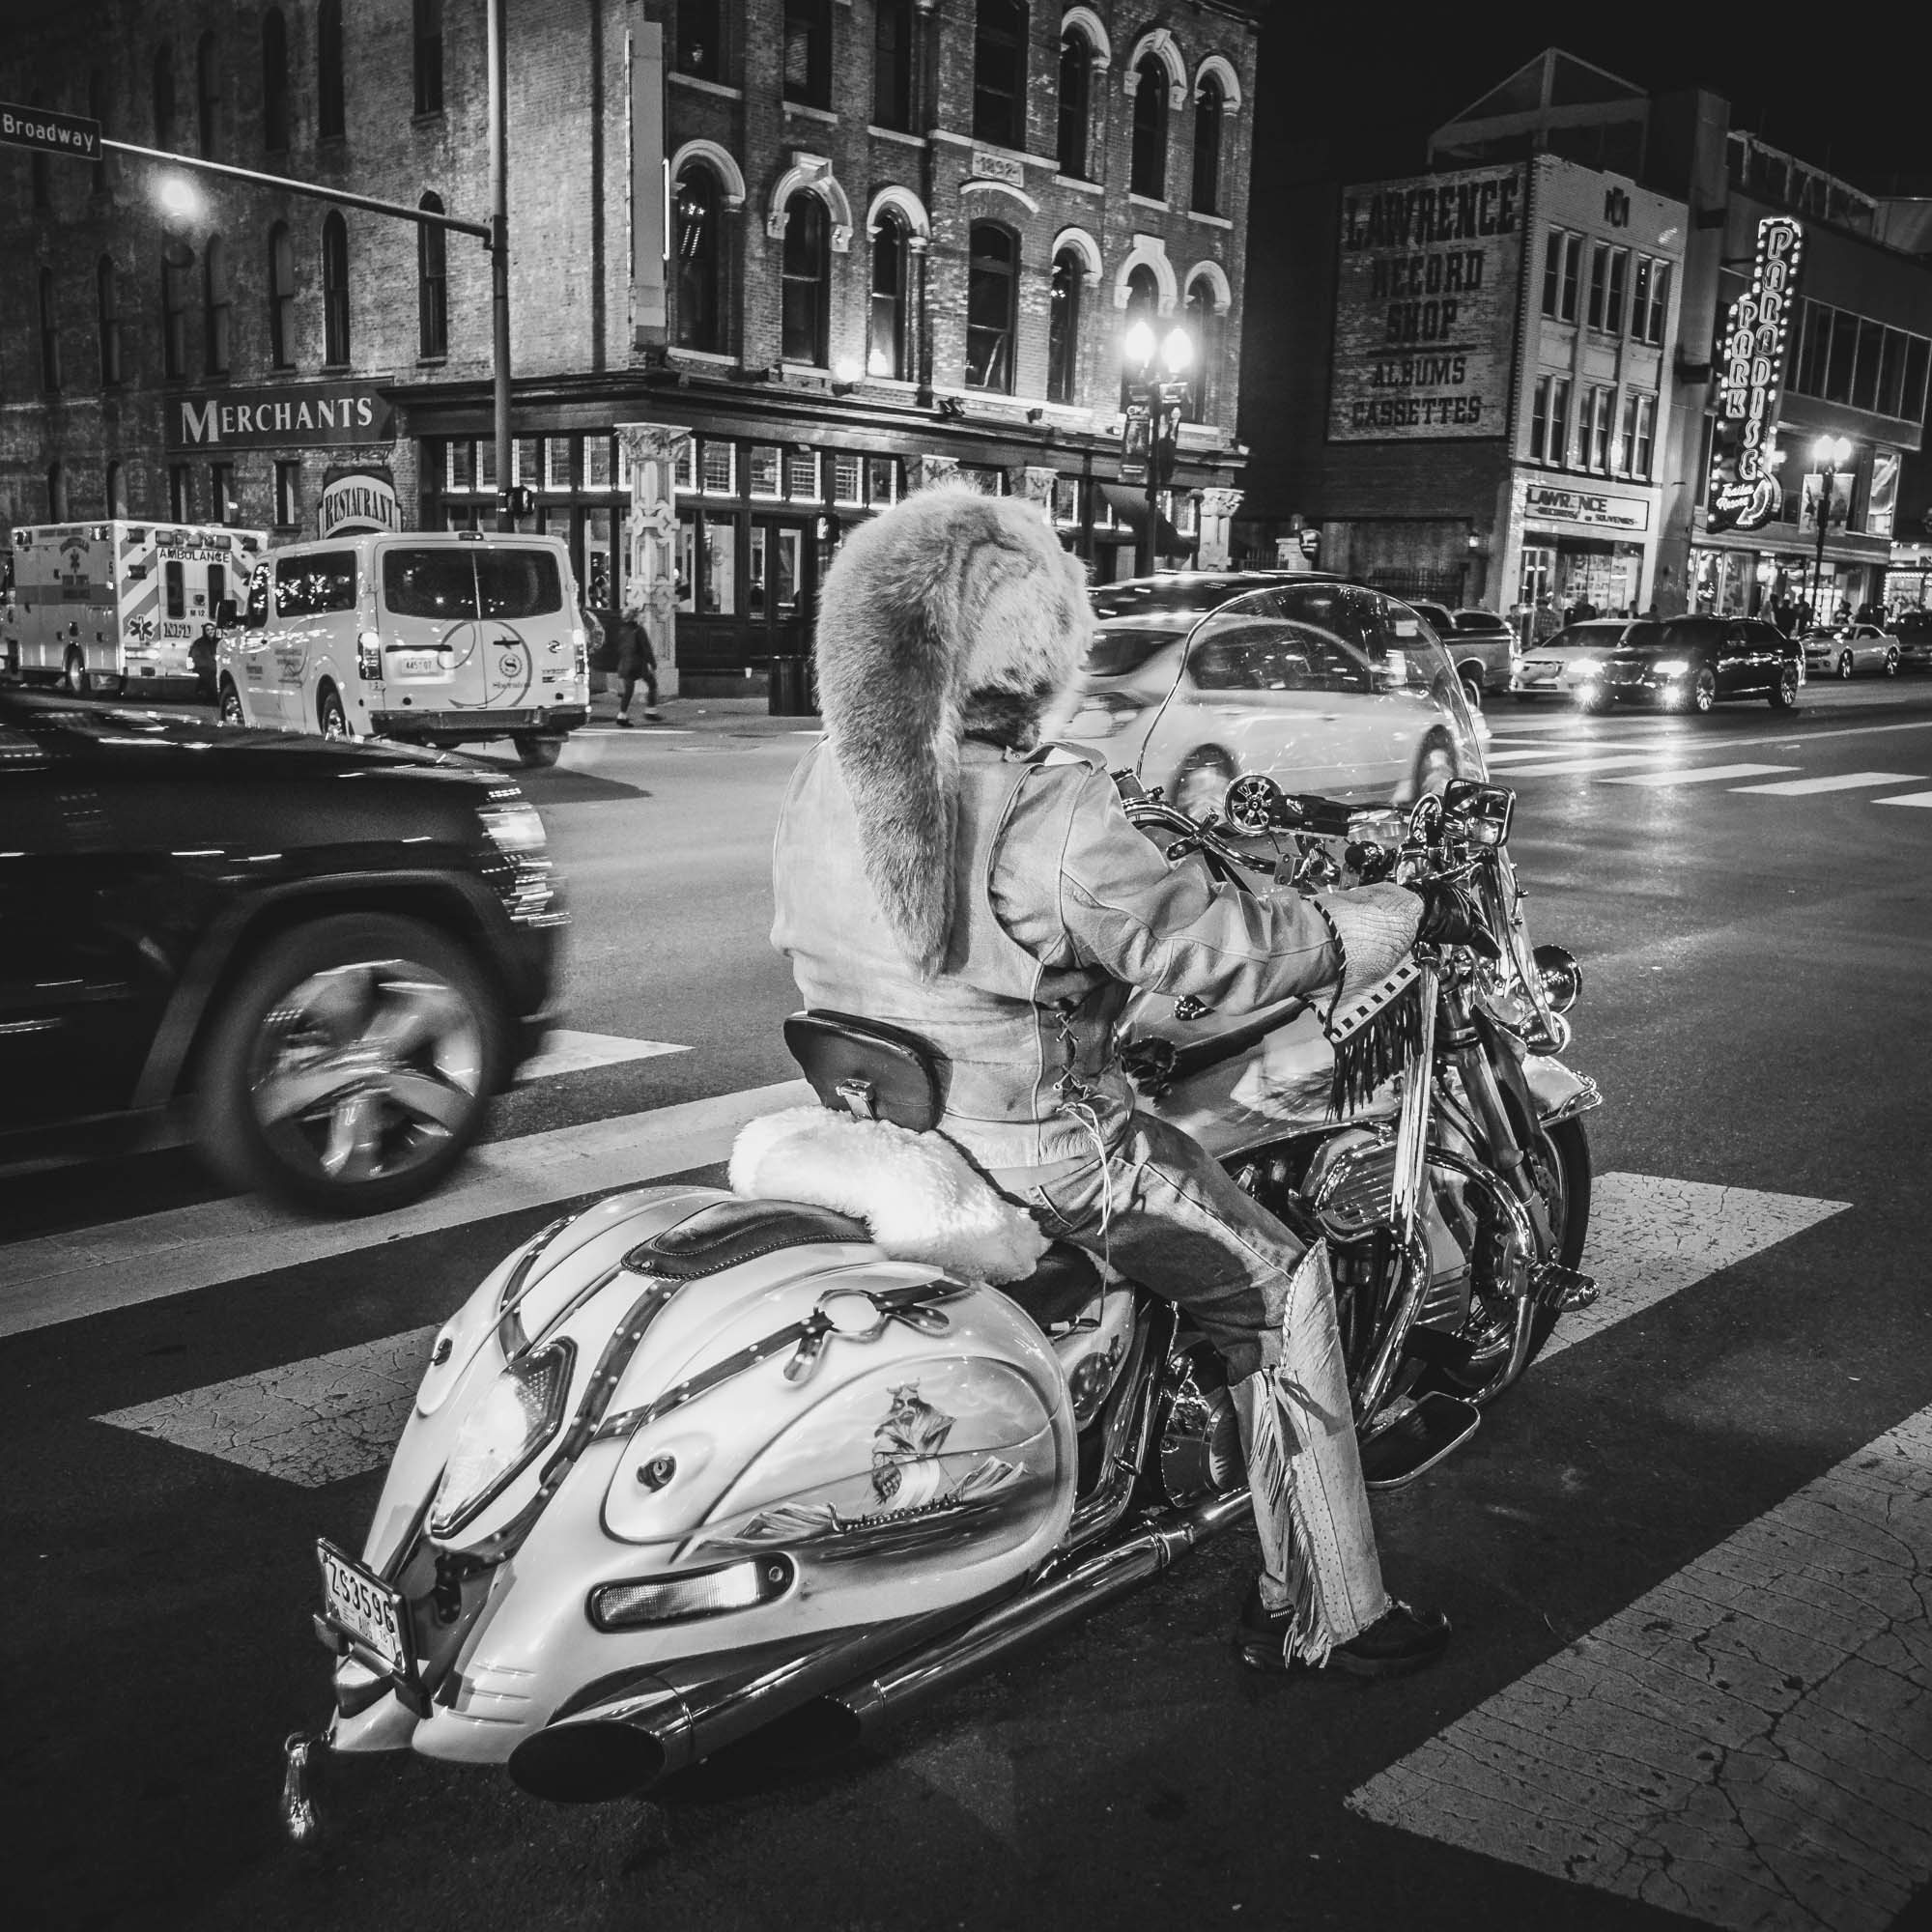 Road King - Nashville Tennessee